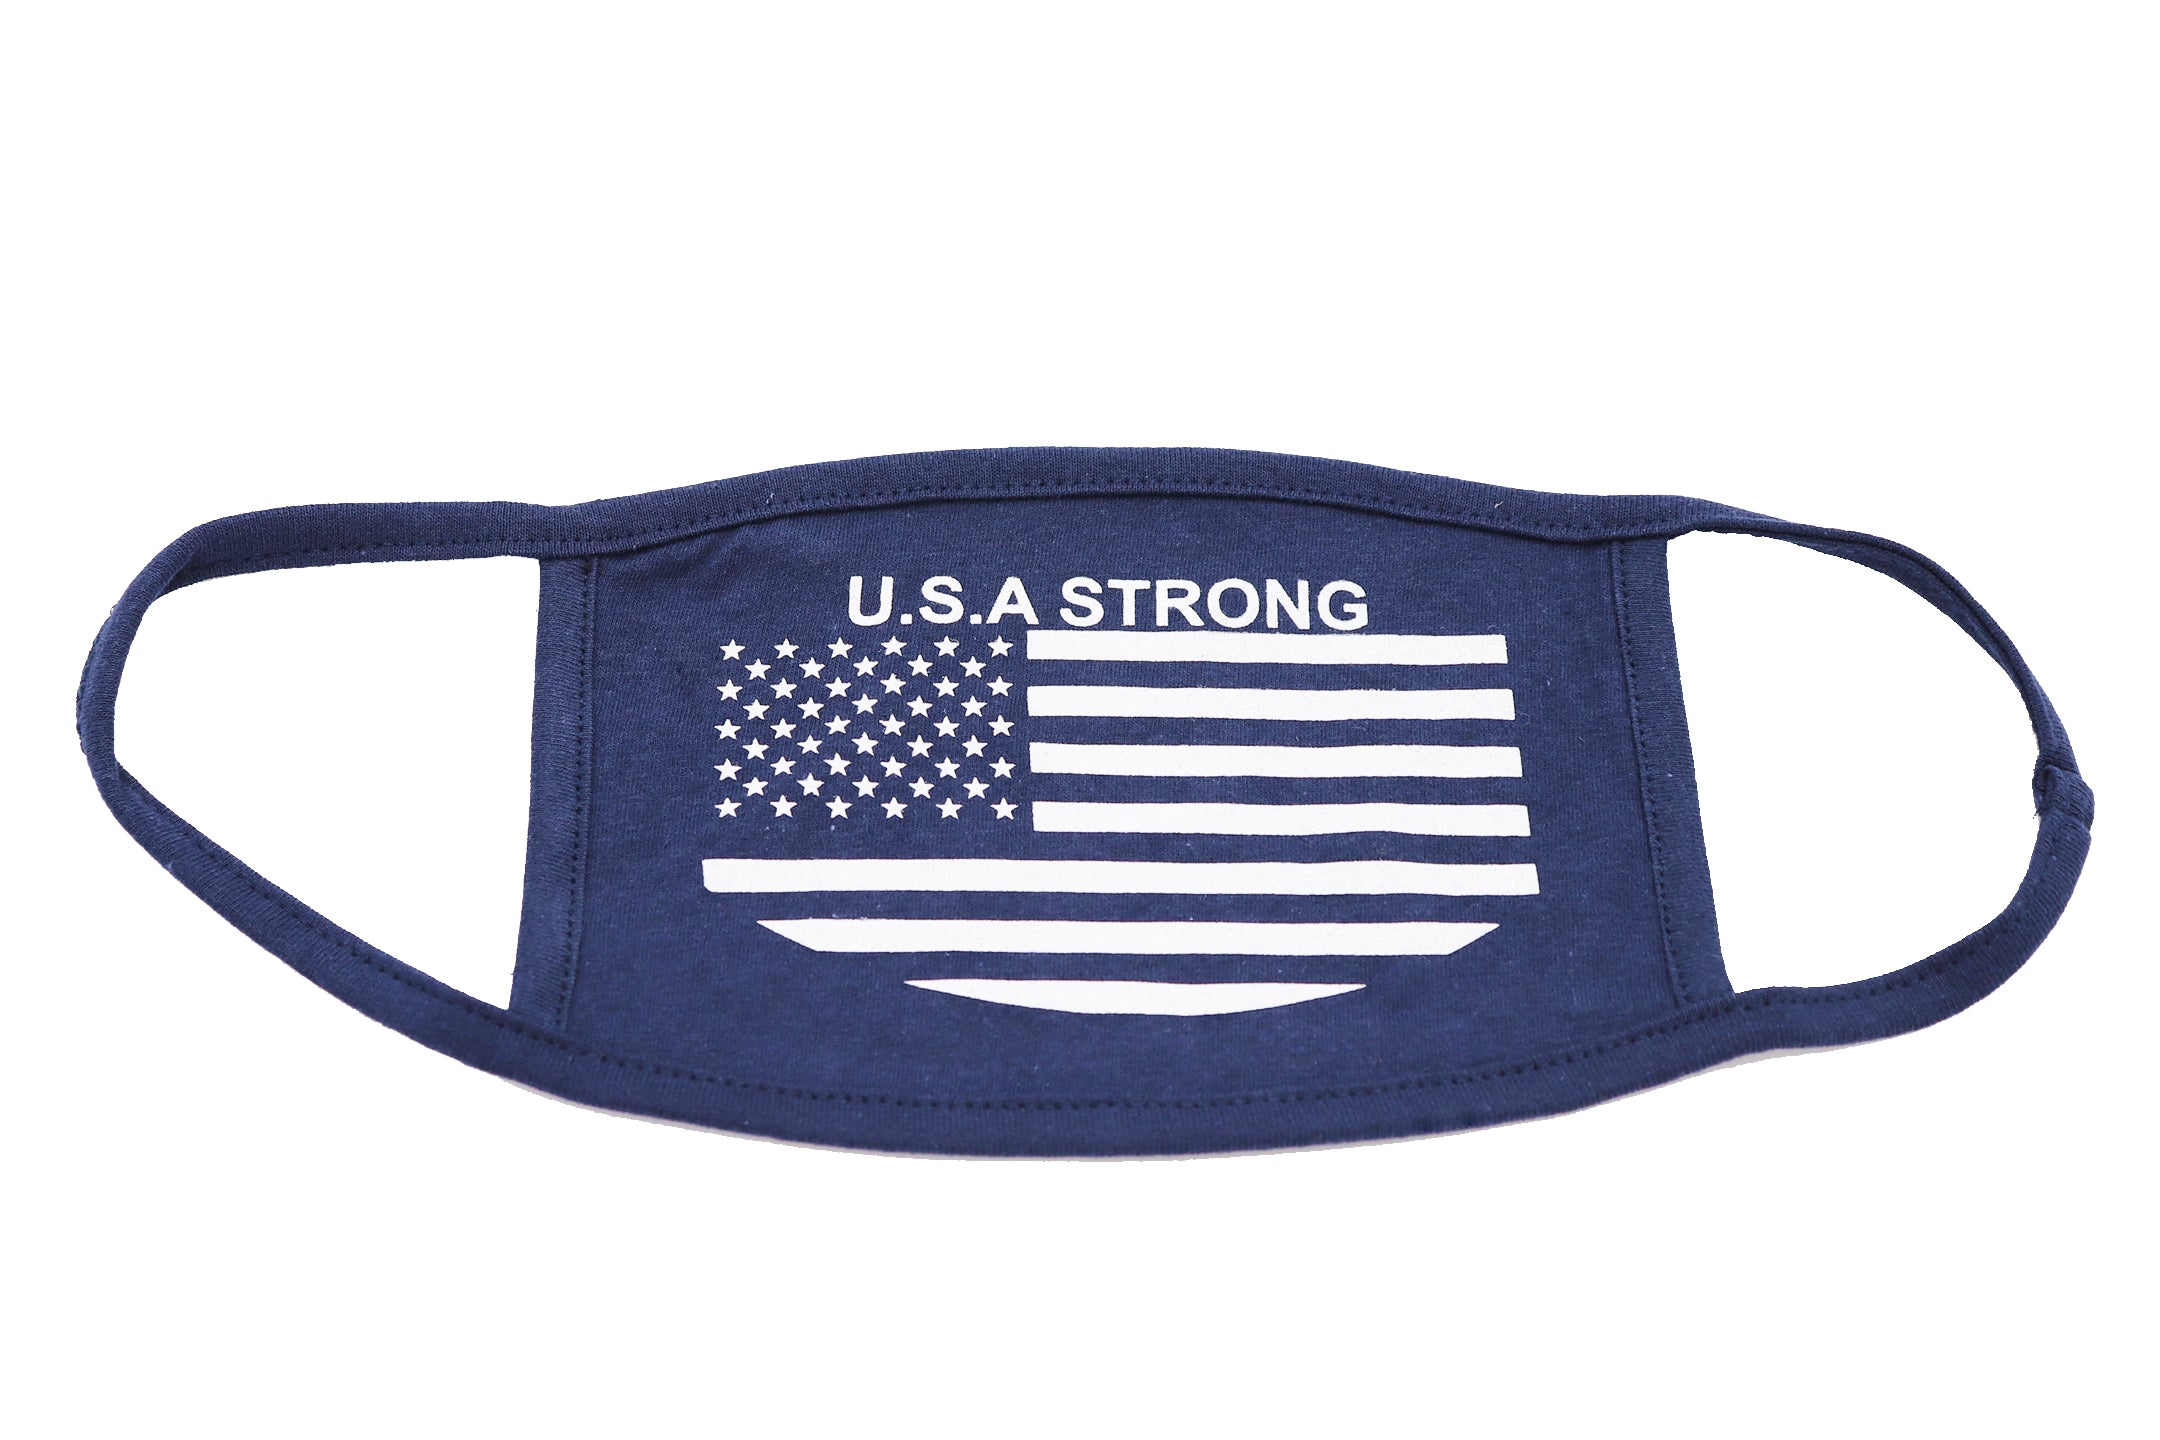 Face mask adult men or women. USA Strong Navy OSFM (one size fits most) wide coverage. Sold by SDTrading Co.